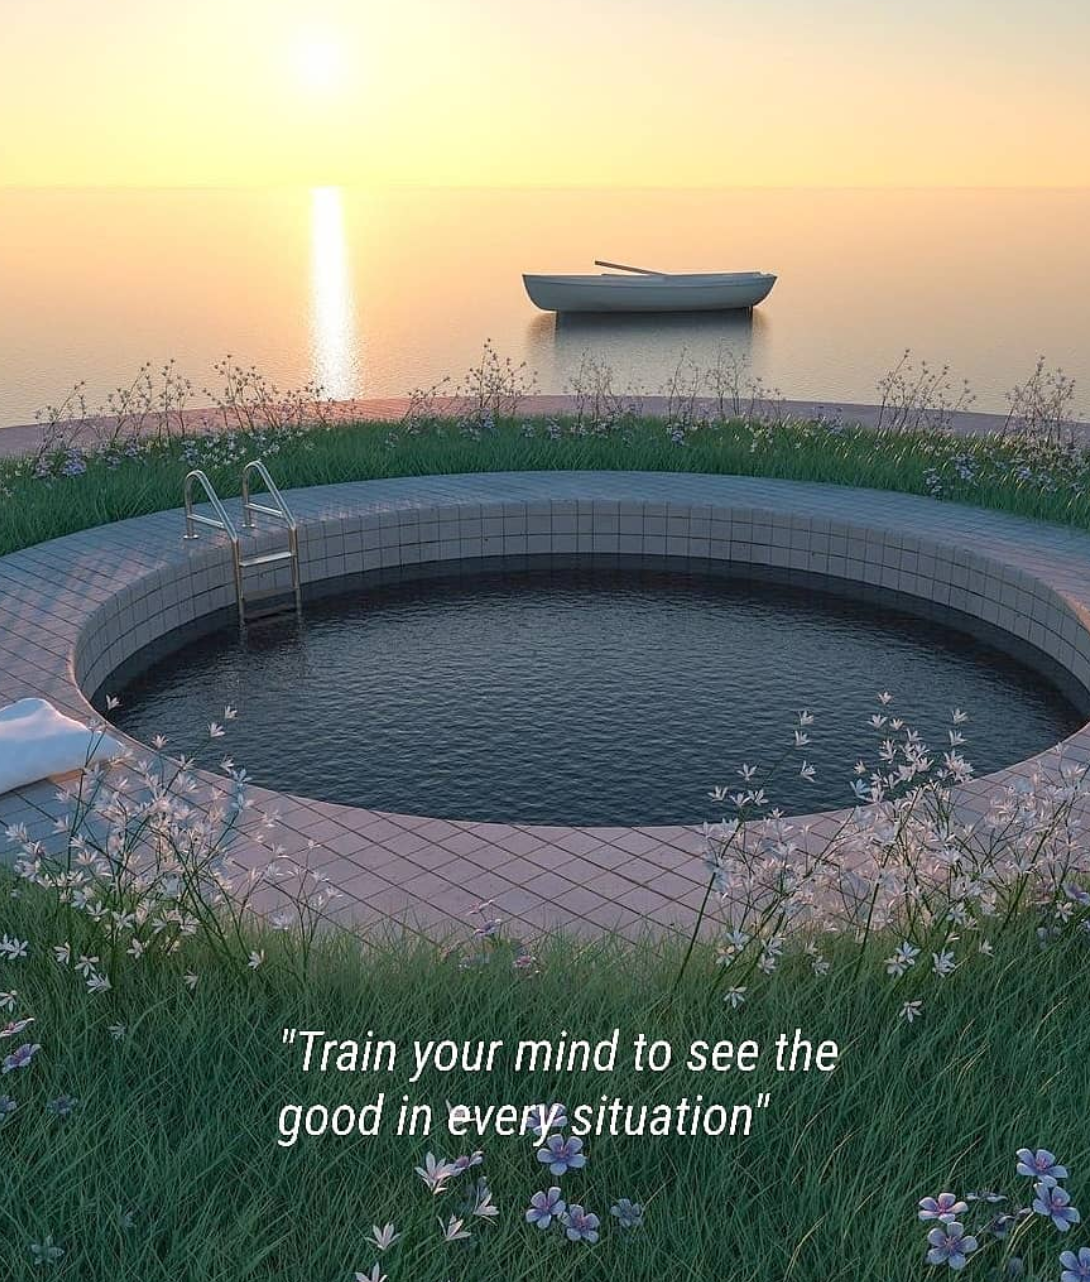 [Image] See the good in every situation